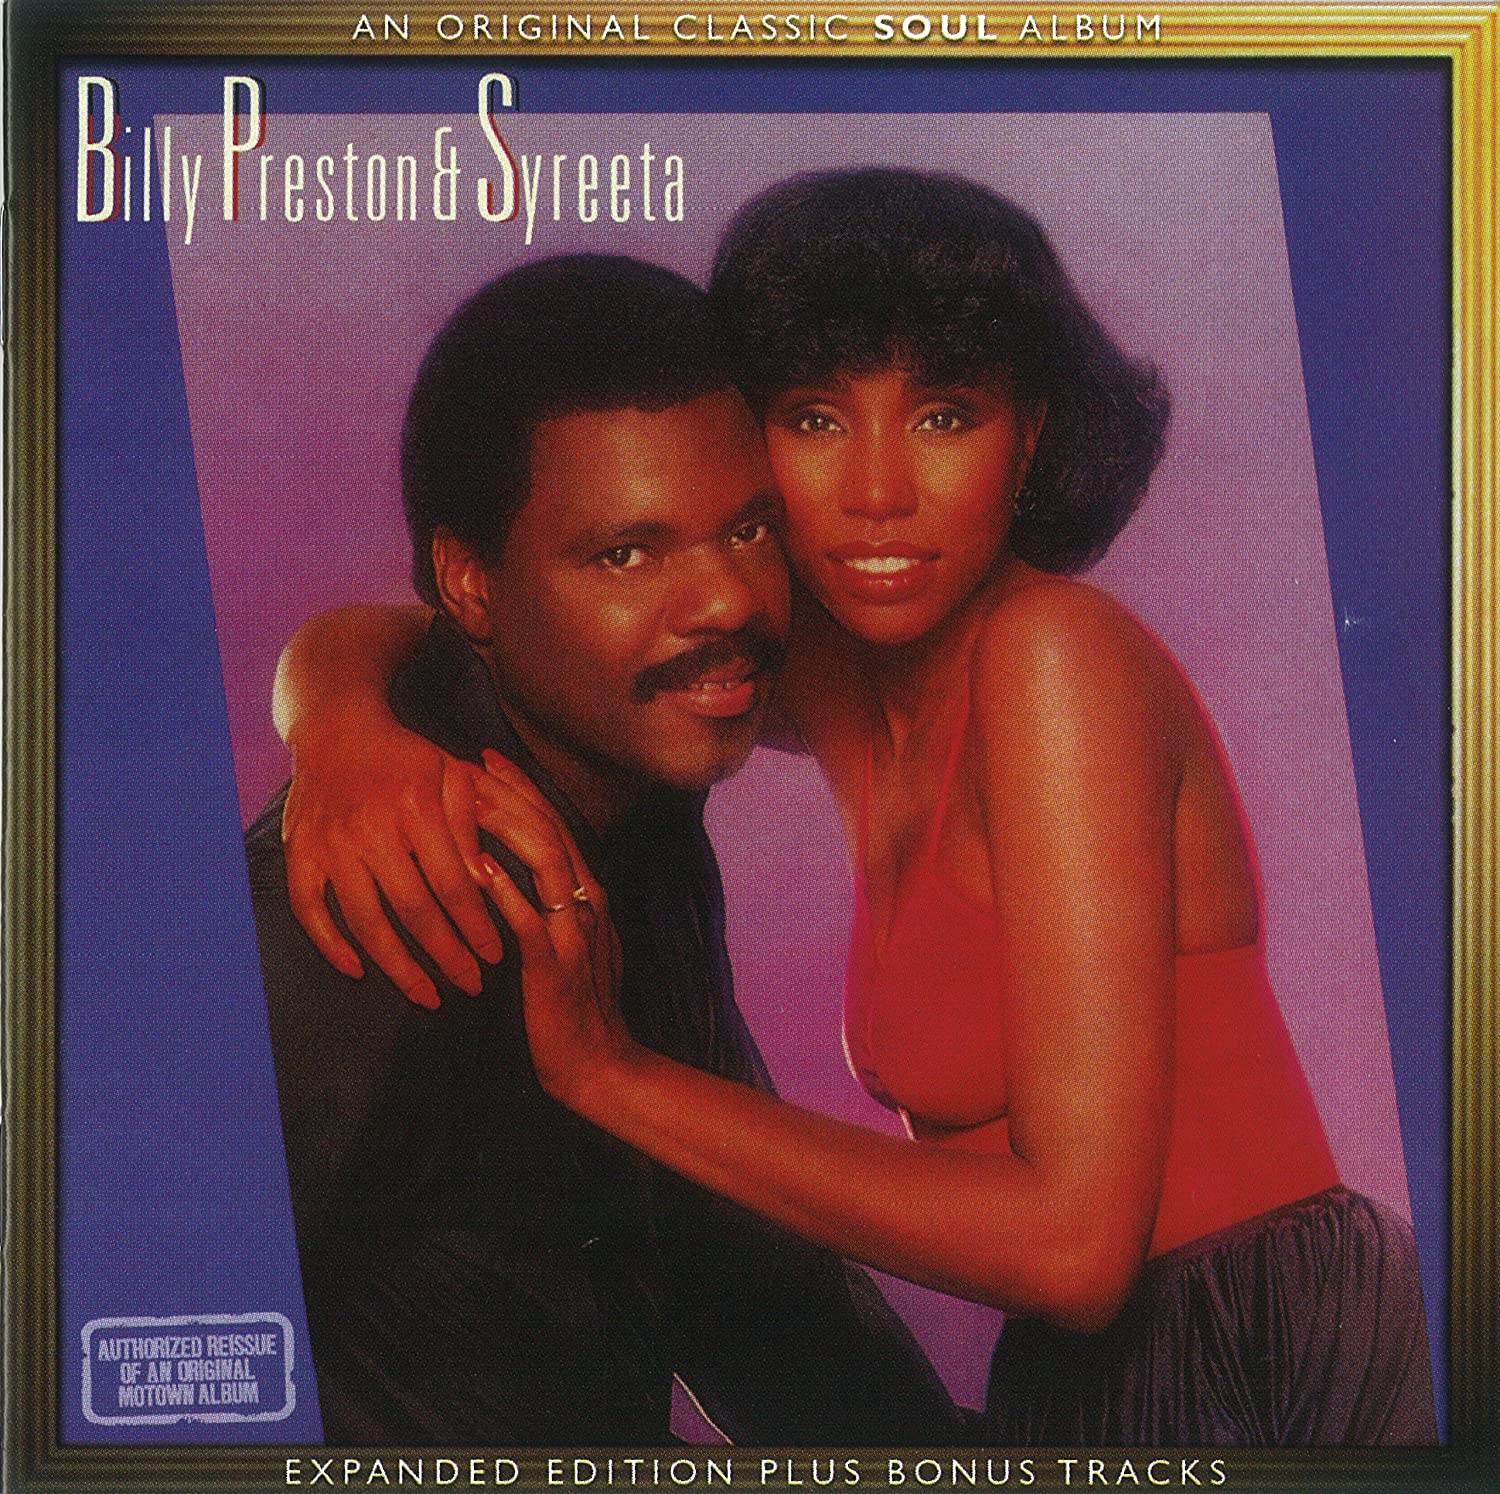 Billy Preston & Syreeta (Expanded Edition)